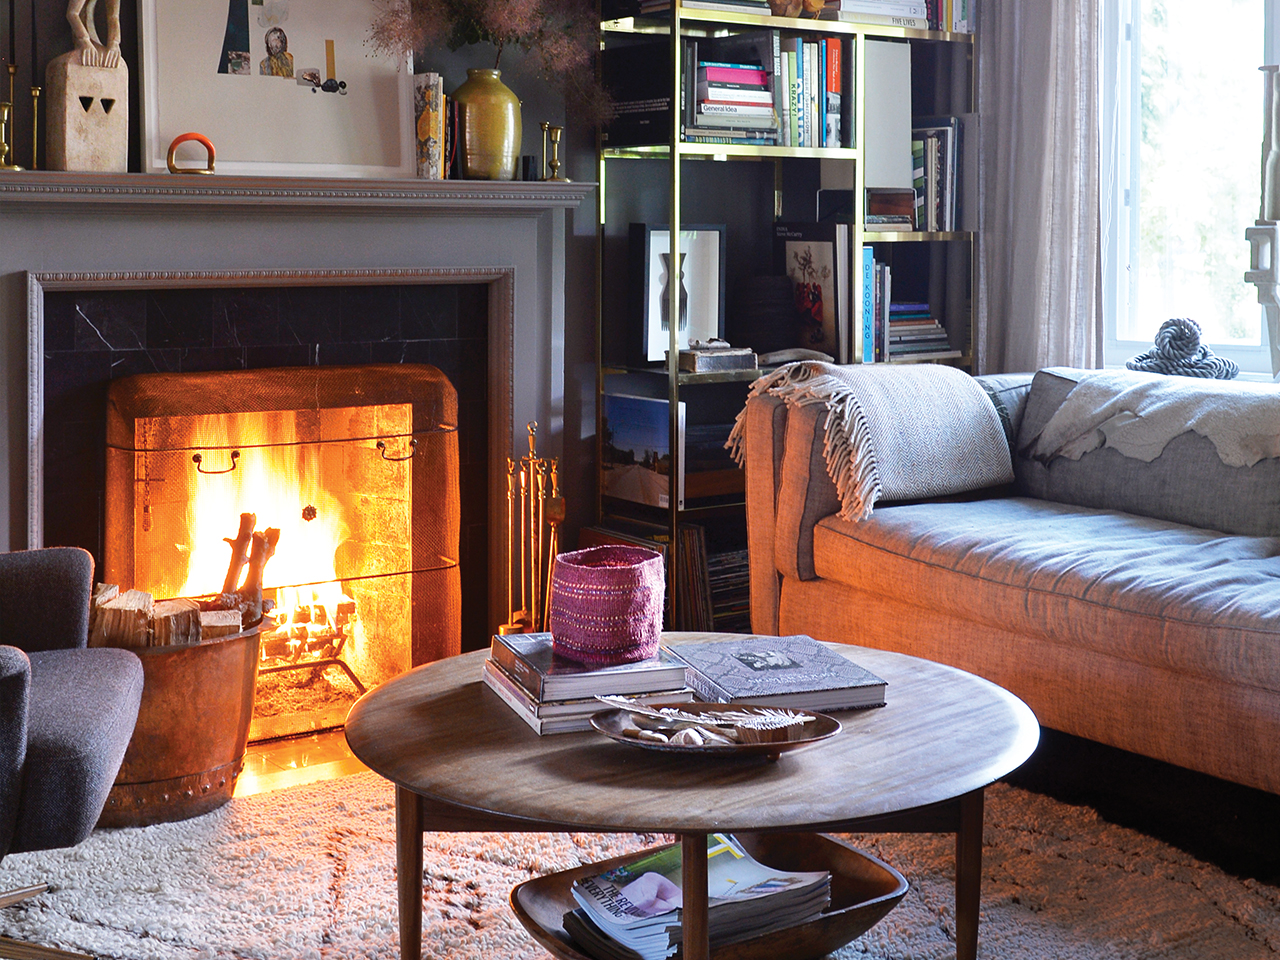 Picture of a cozy living room with a fire place for article on how to enjoy your home more